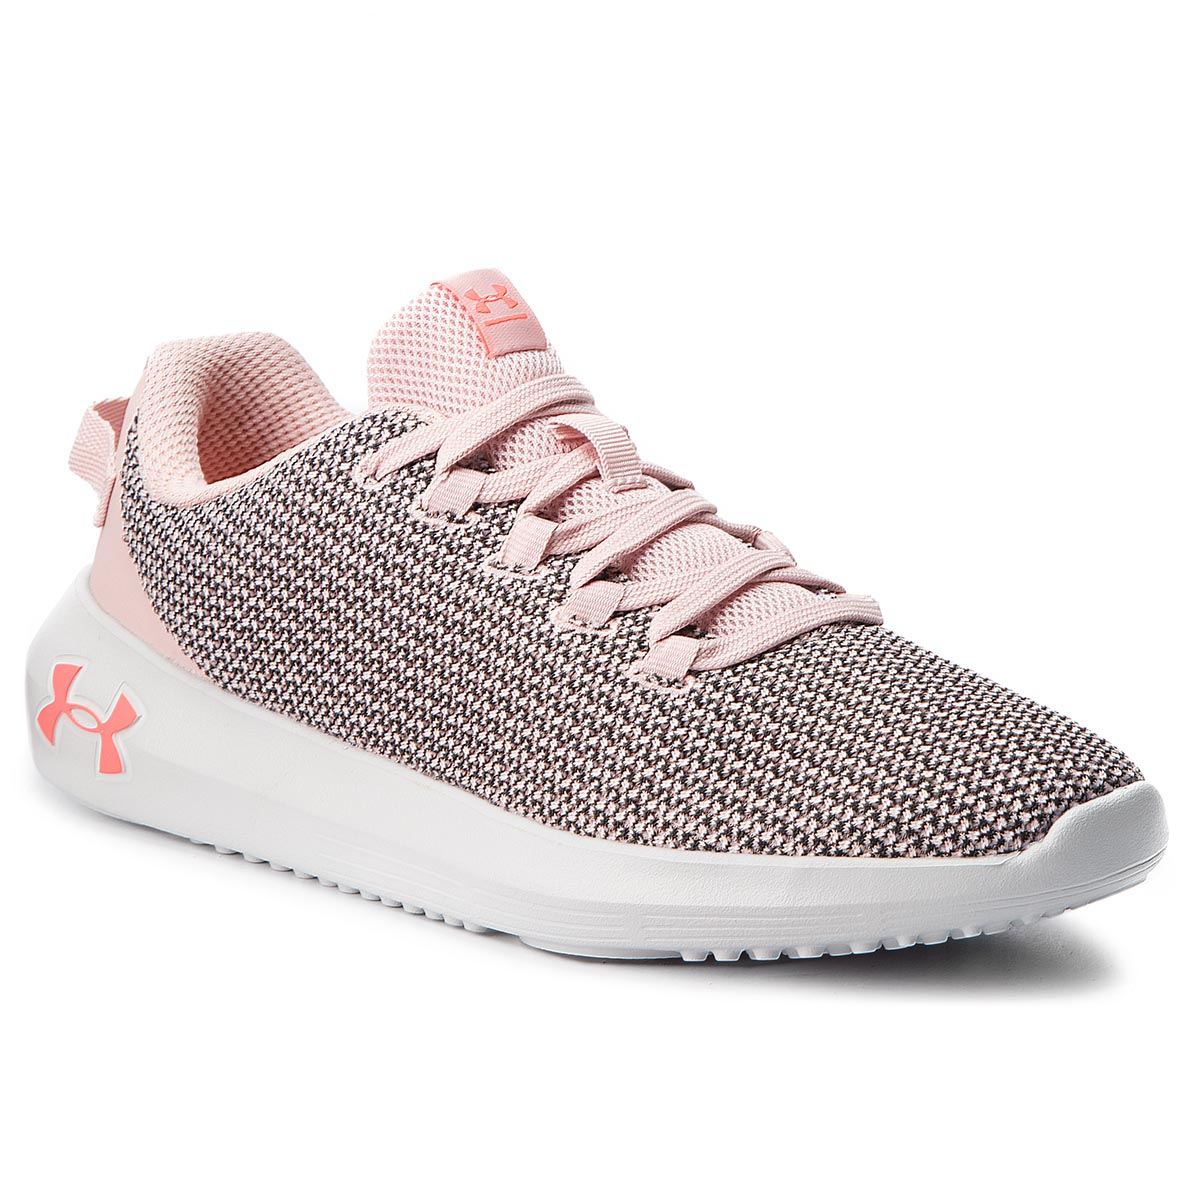 c678d64df6ee7 Buty UNDER ARMOUR - Ua W Ripple 3021187-601 Pnk